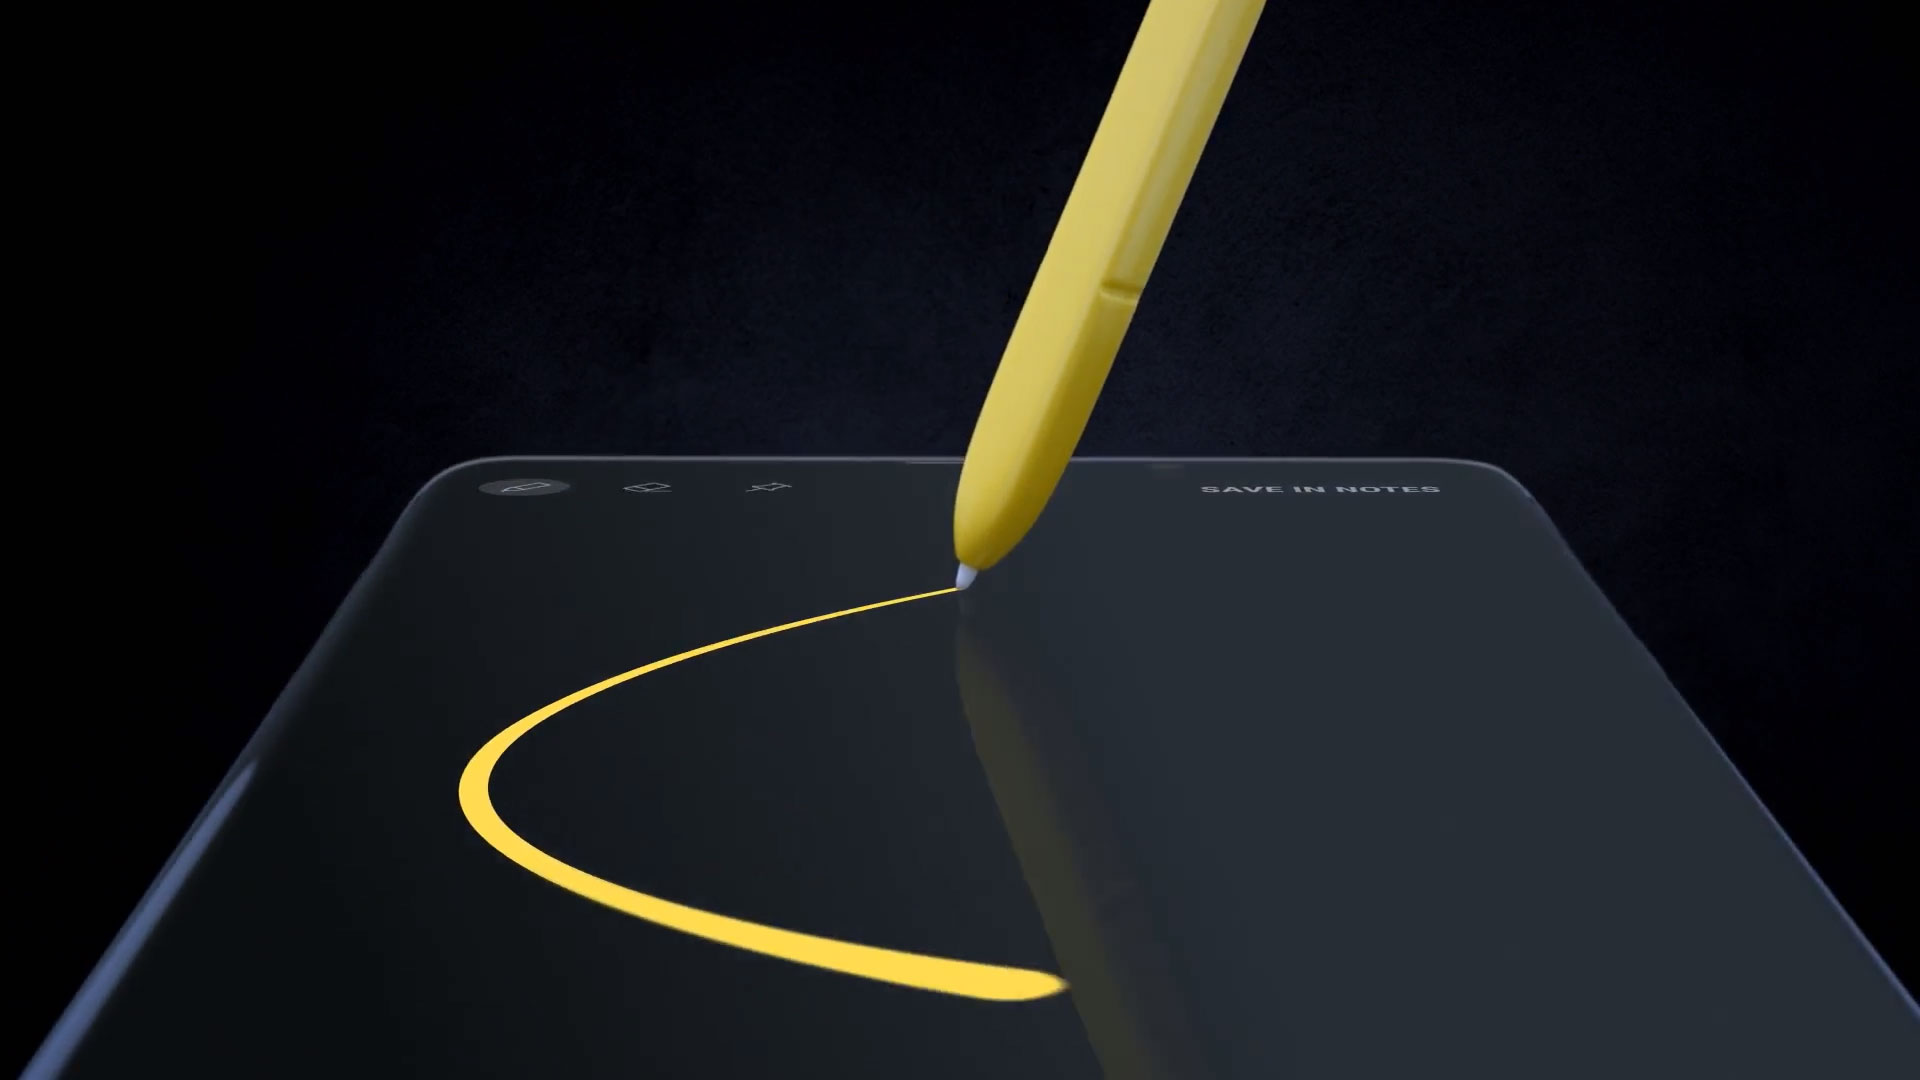 Samsung Galaxy Note official video leak shows it'll offer huge TfcebVDXnnriBqUyfwNu